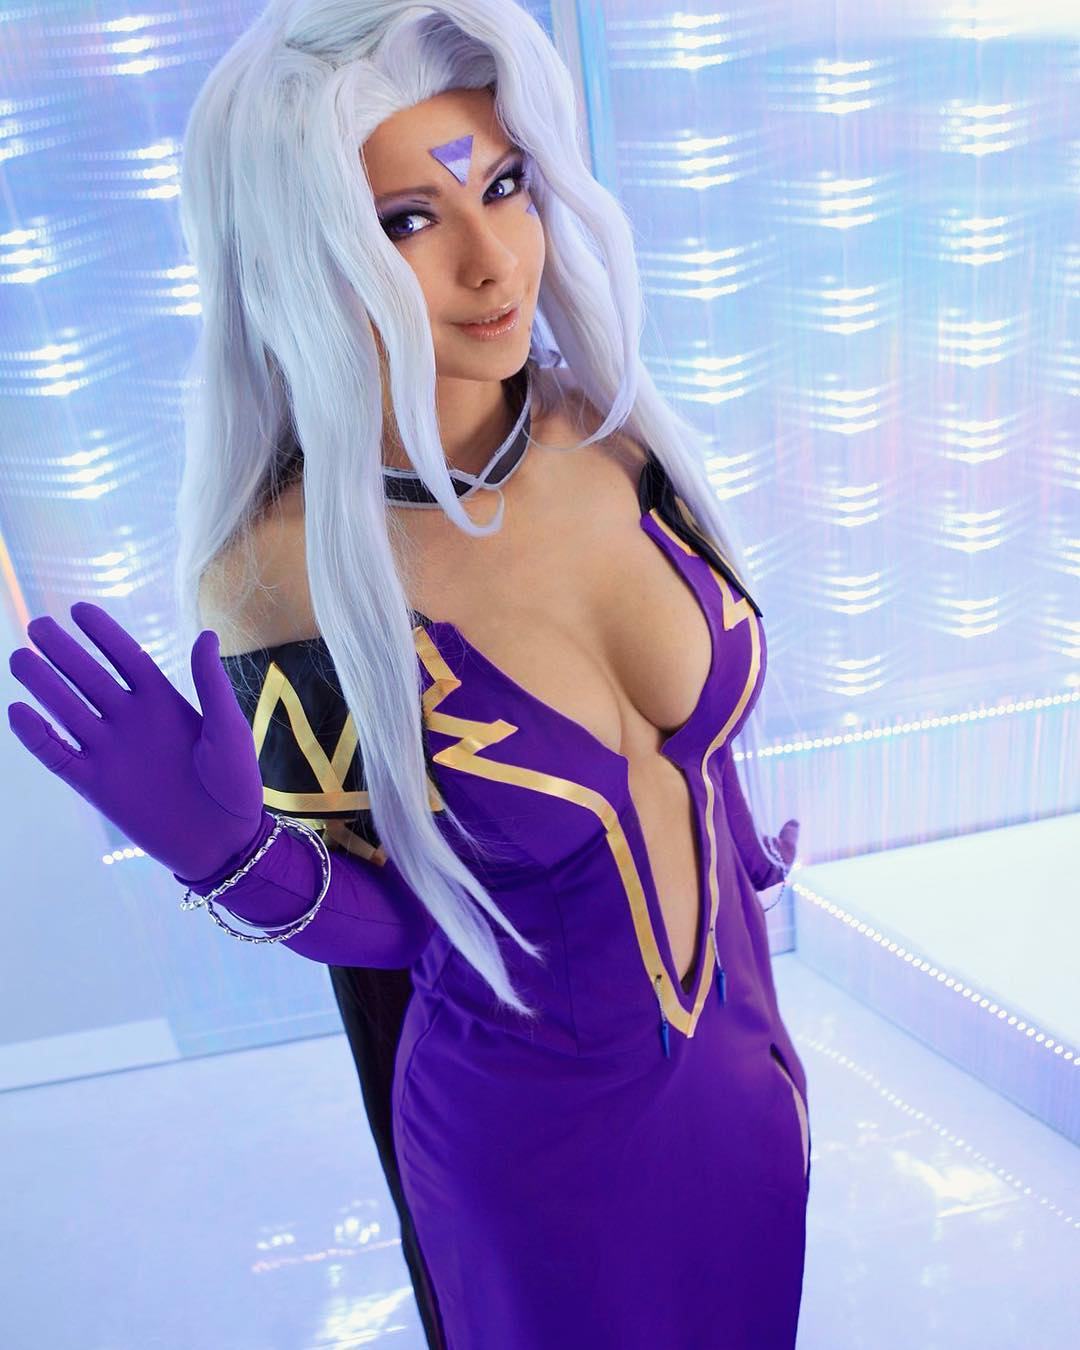 Jannet Incosplay Sexy Boosb Pictures on Blue Cosplay Dress